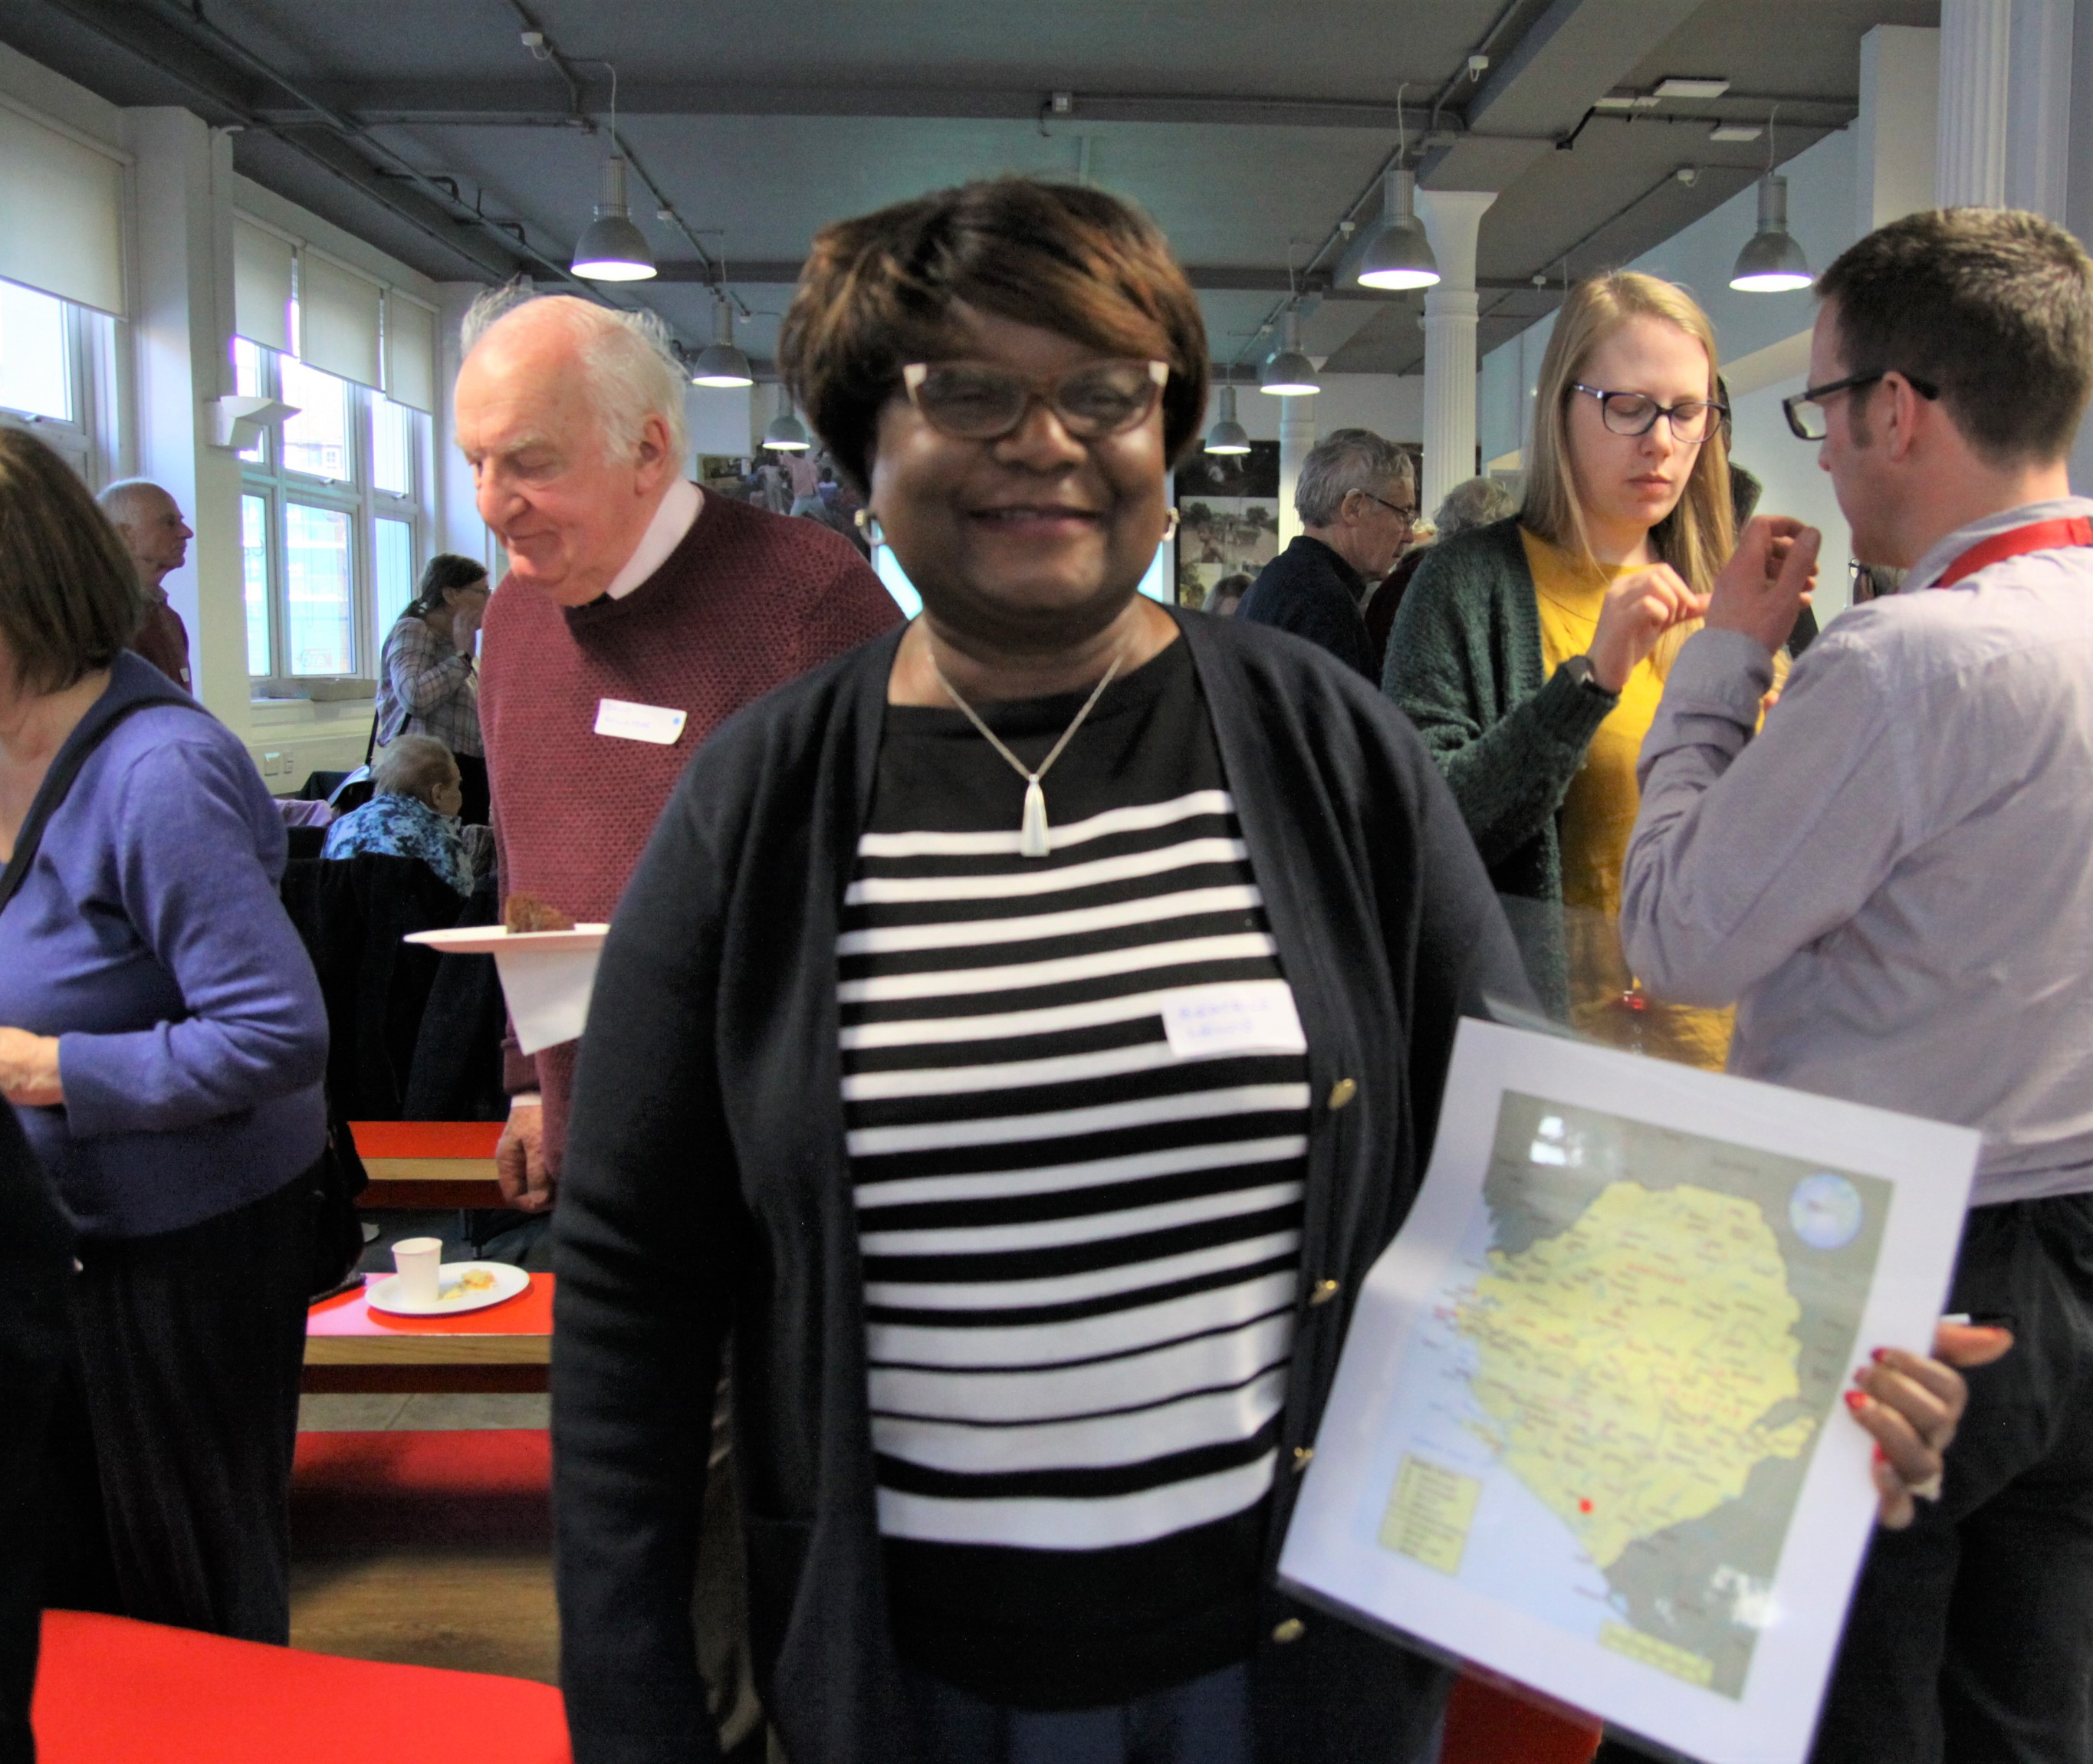 One of our Croydon Church Reps, originally from Sierra Leone, holds a map showing the location of Sawula village, the heart of our maternal healthcare in Sierra Leone theme